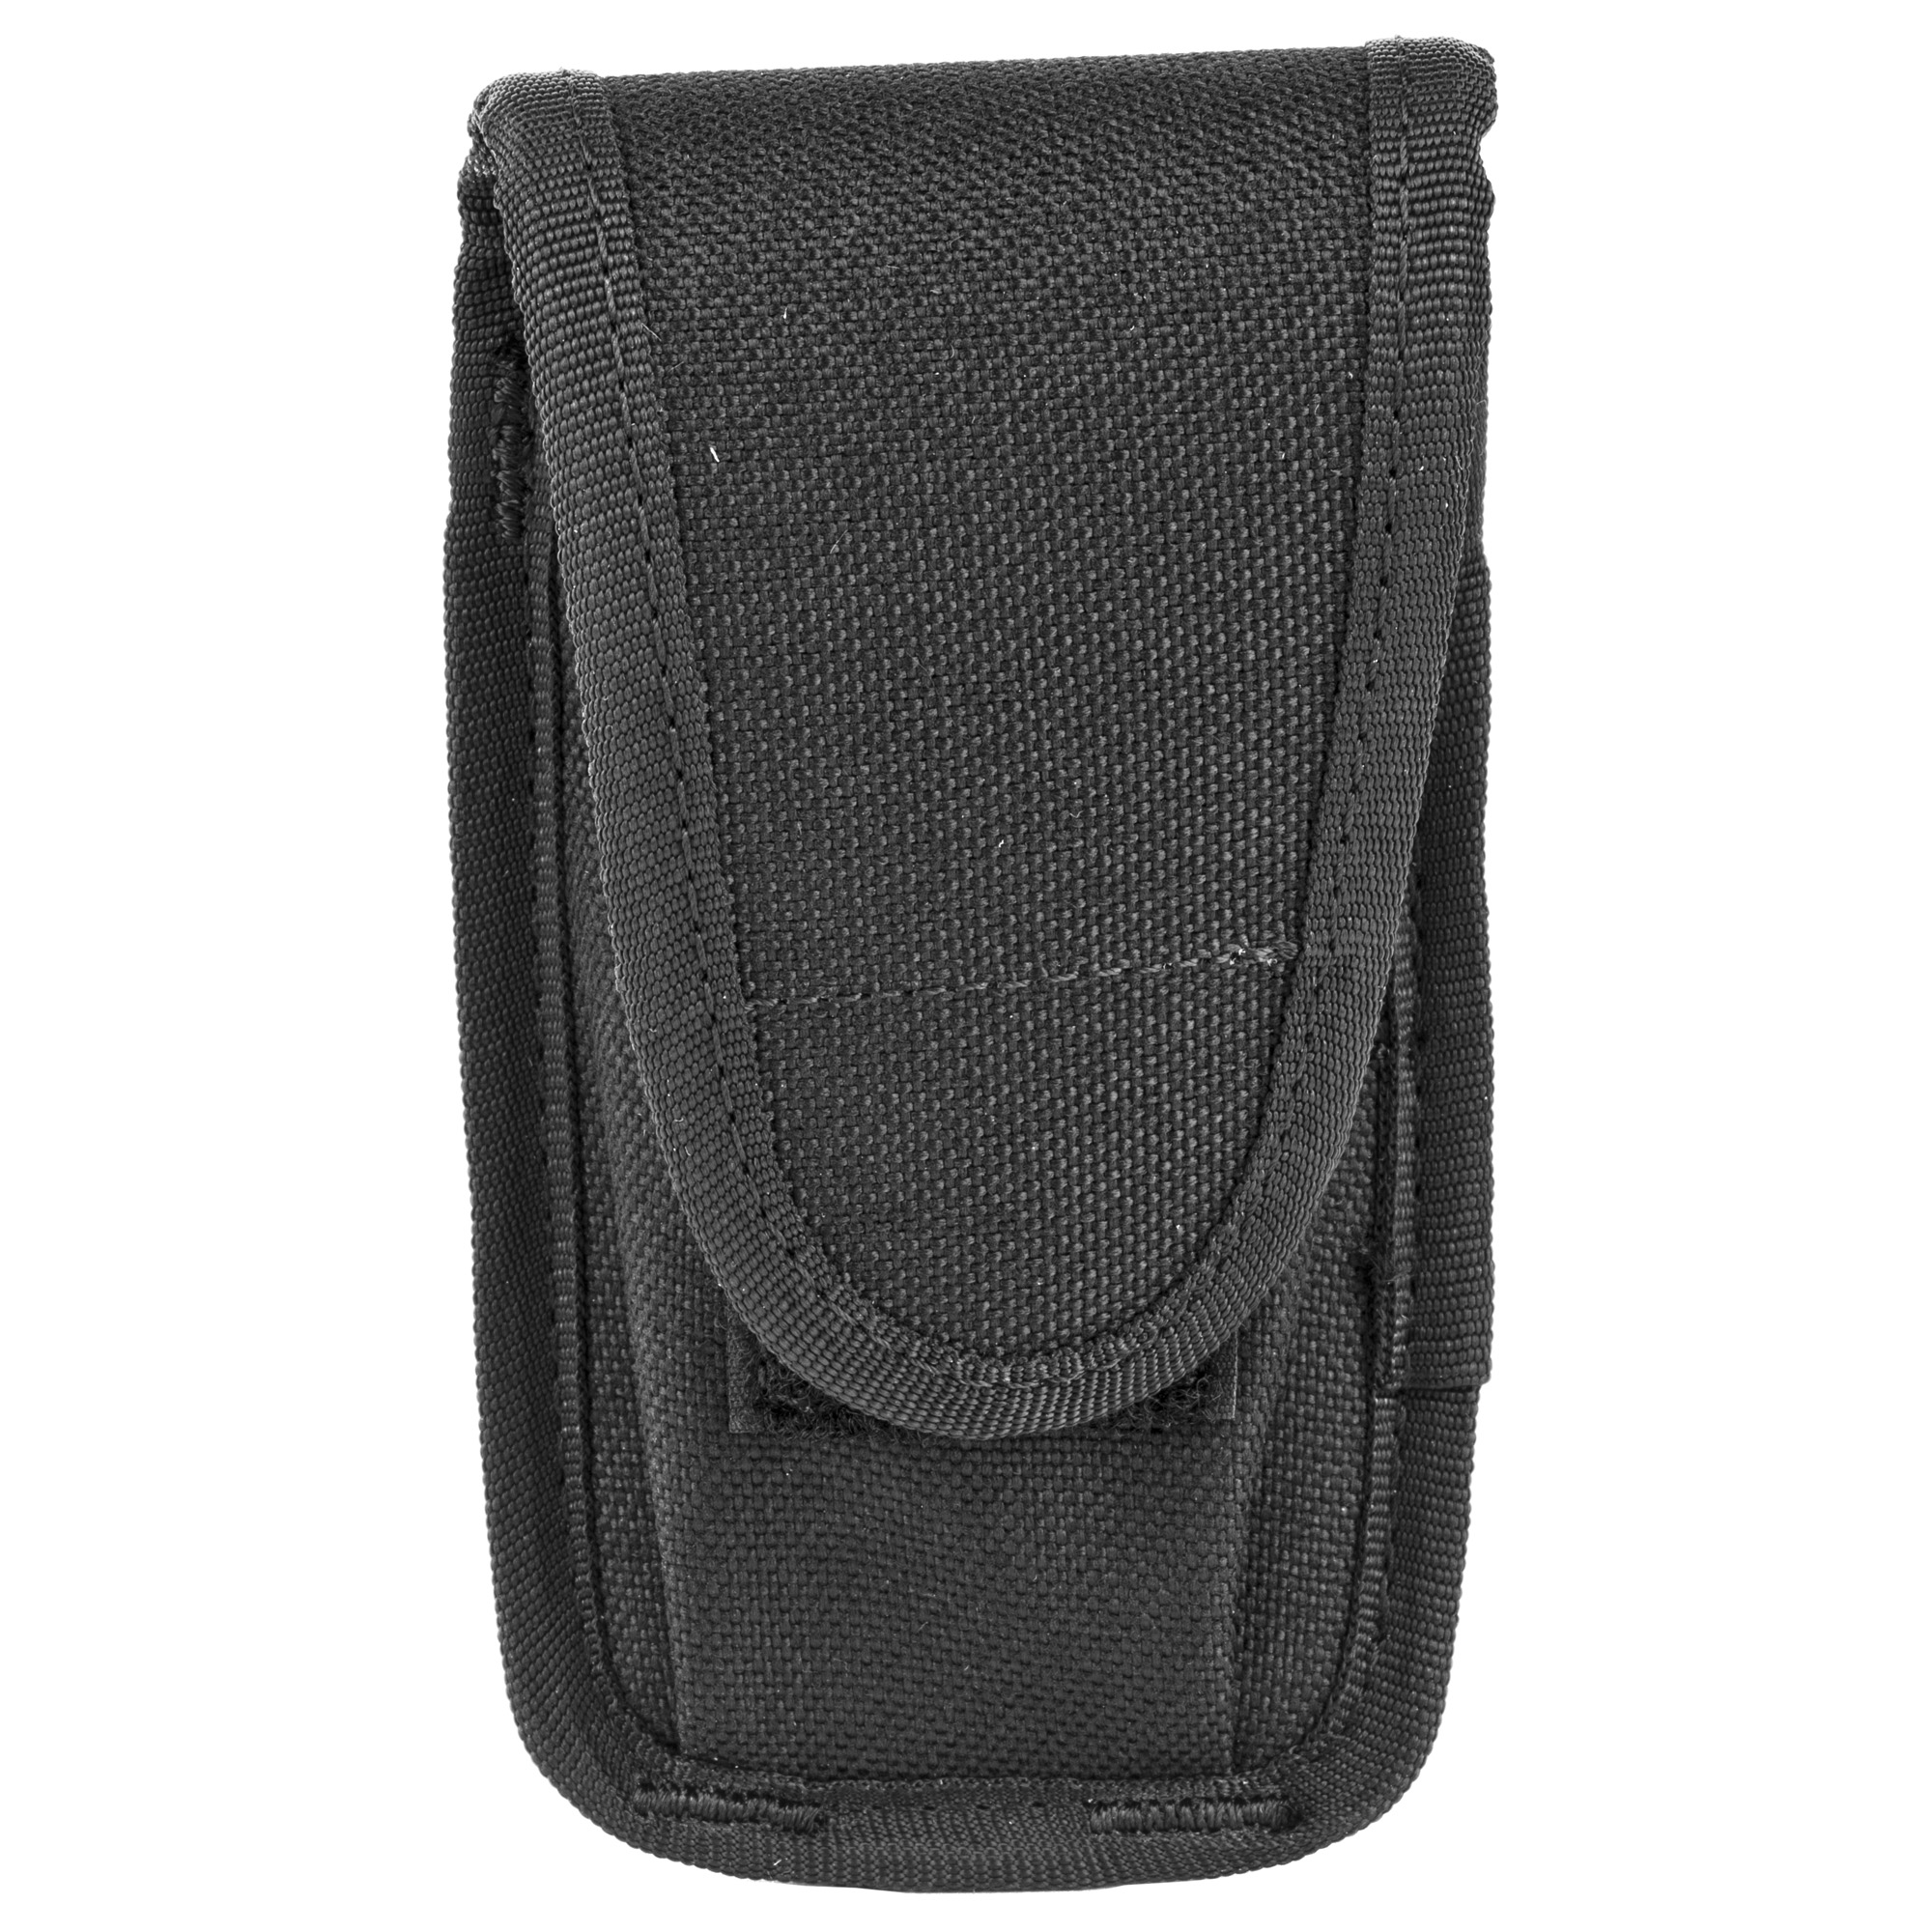 "This single magazine pouch fits most magazine sizes and clips to a dress belt. It can be used for horizontal or vertical carry. It will fit 9mm"" 40 S&W"" single row 10mm"" .45ACP metal mags and police type knives."